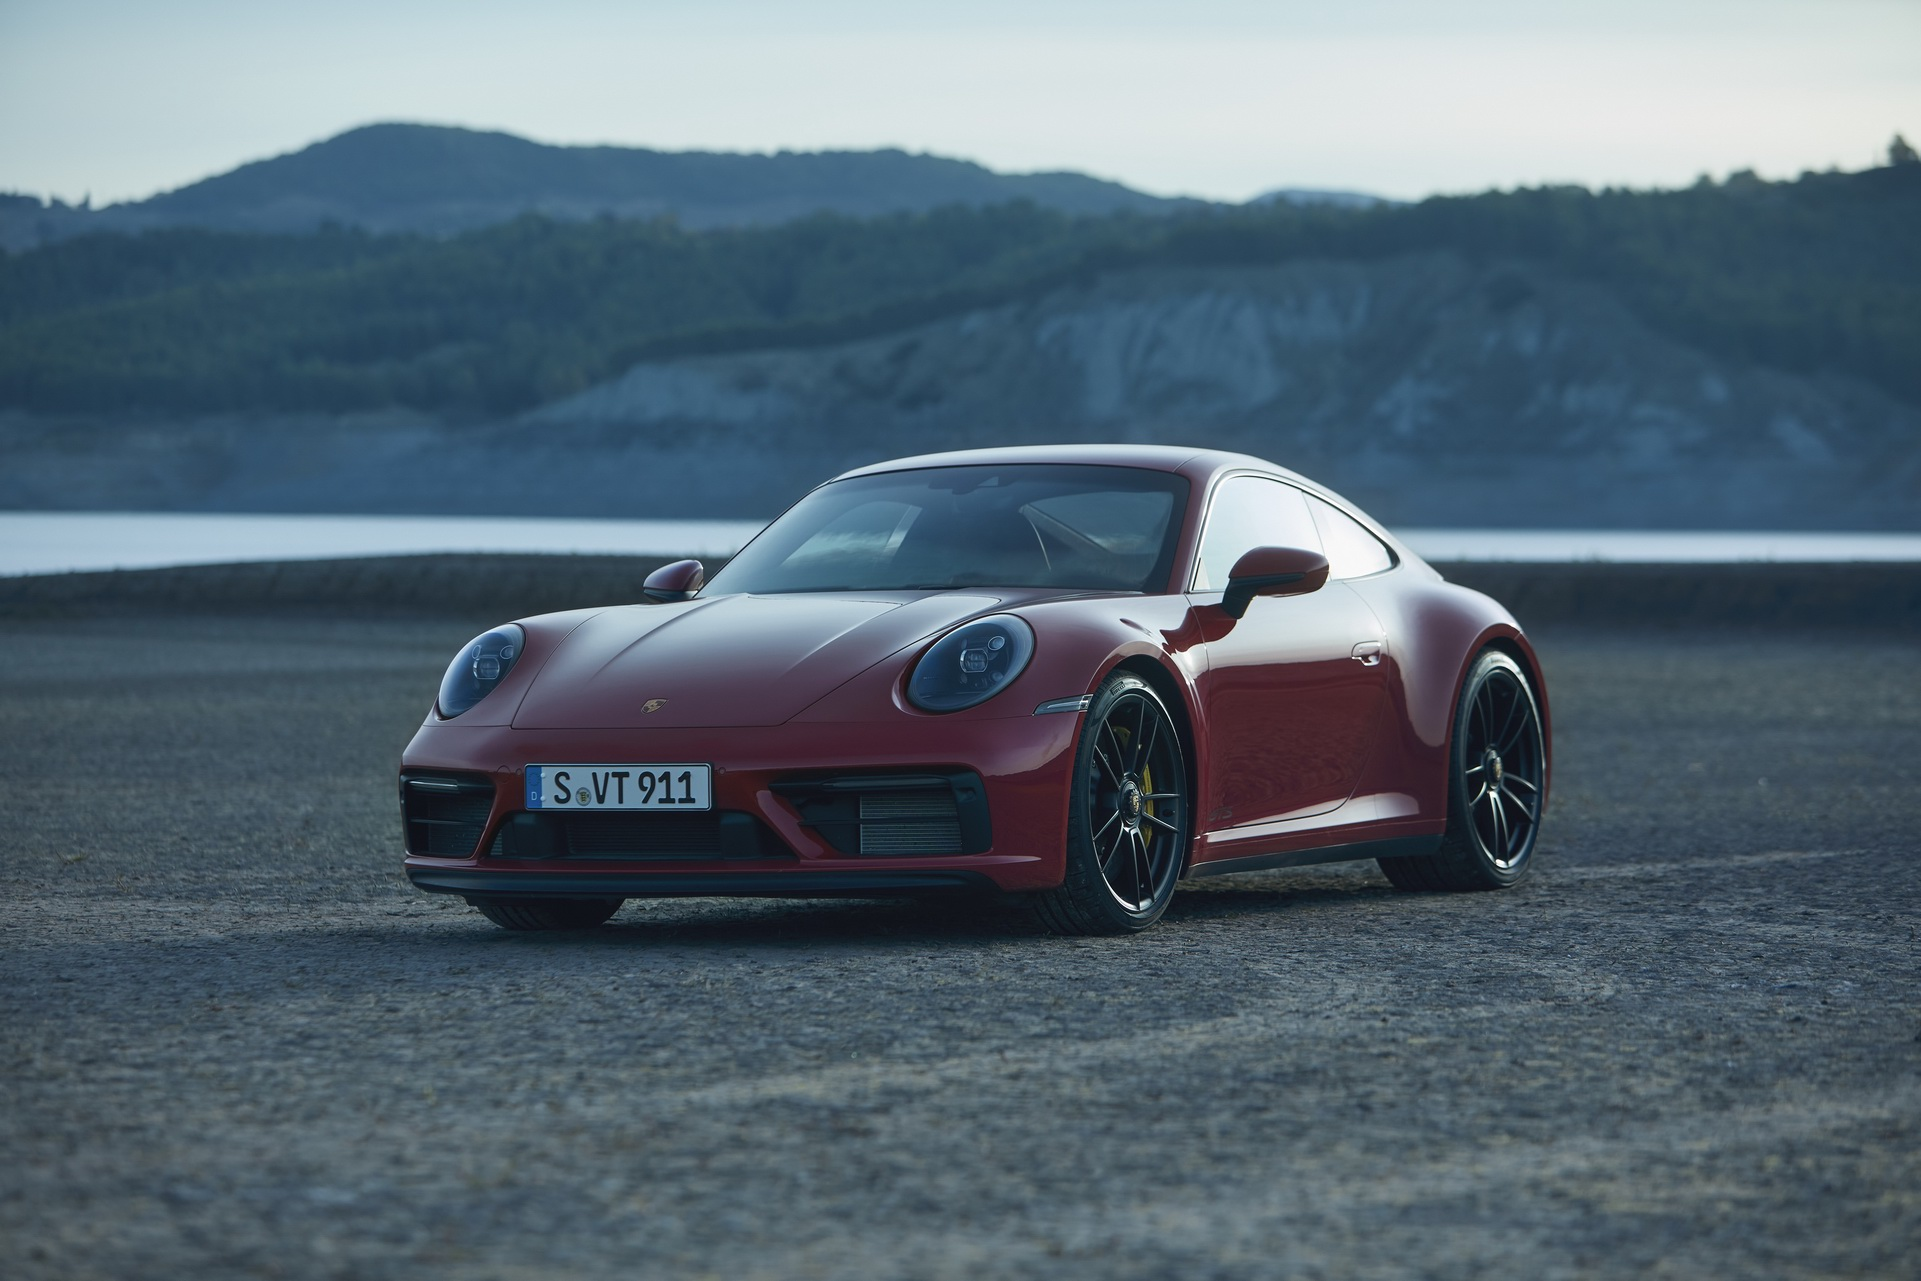 2022 Porsche 911 GTS Debuts More Power And Less Weight